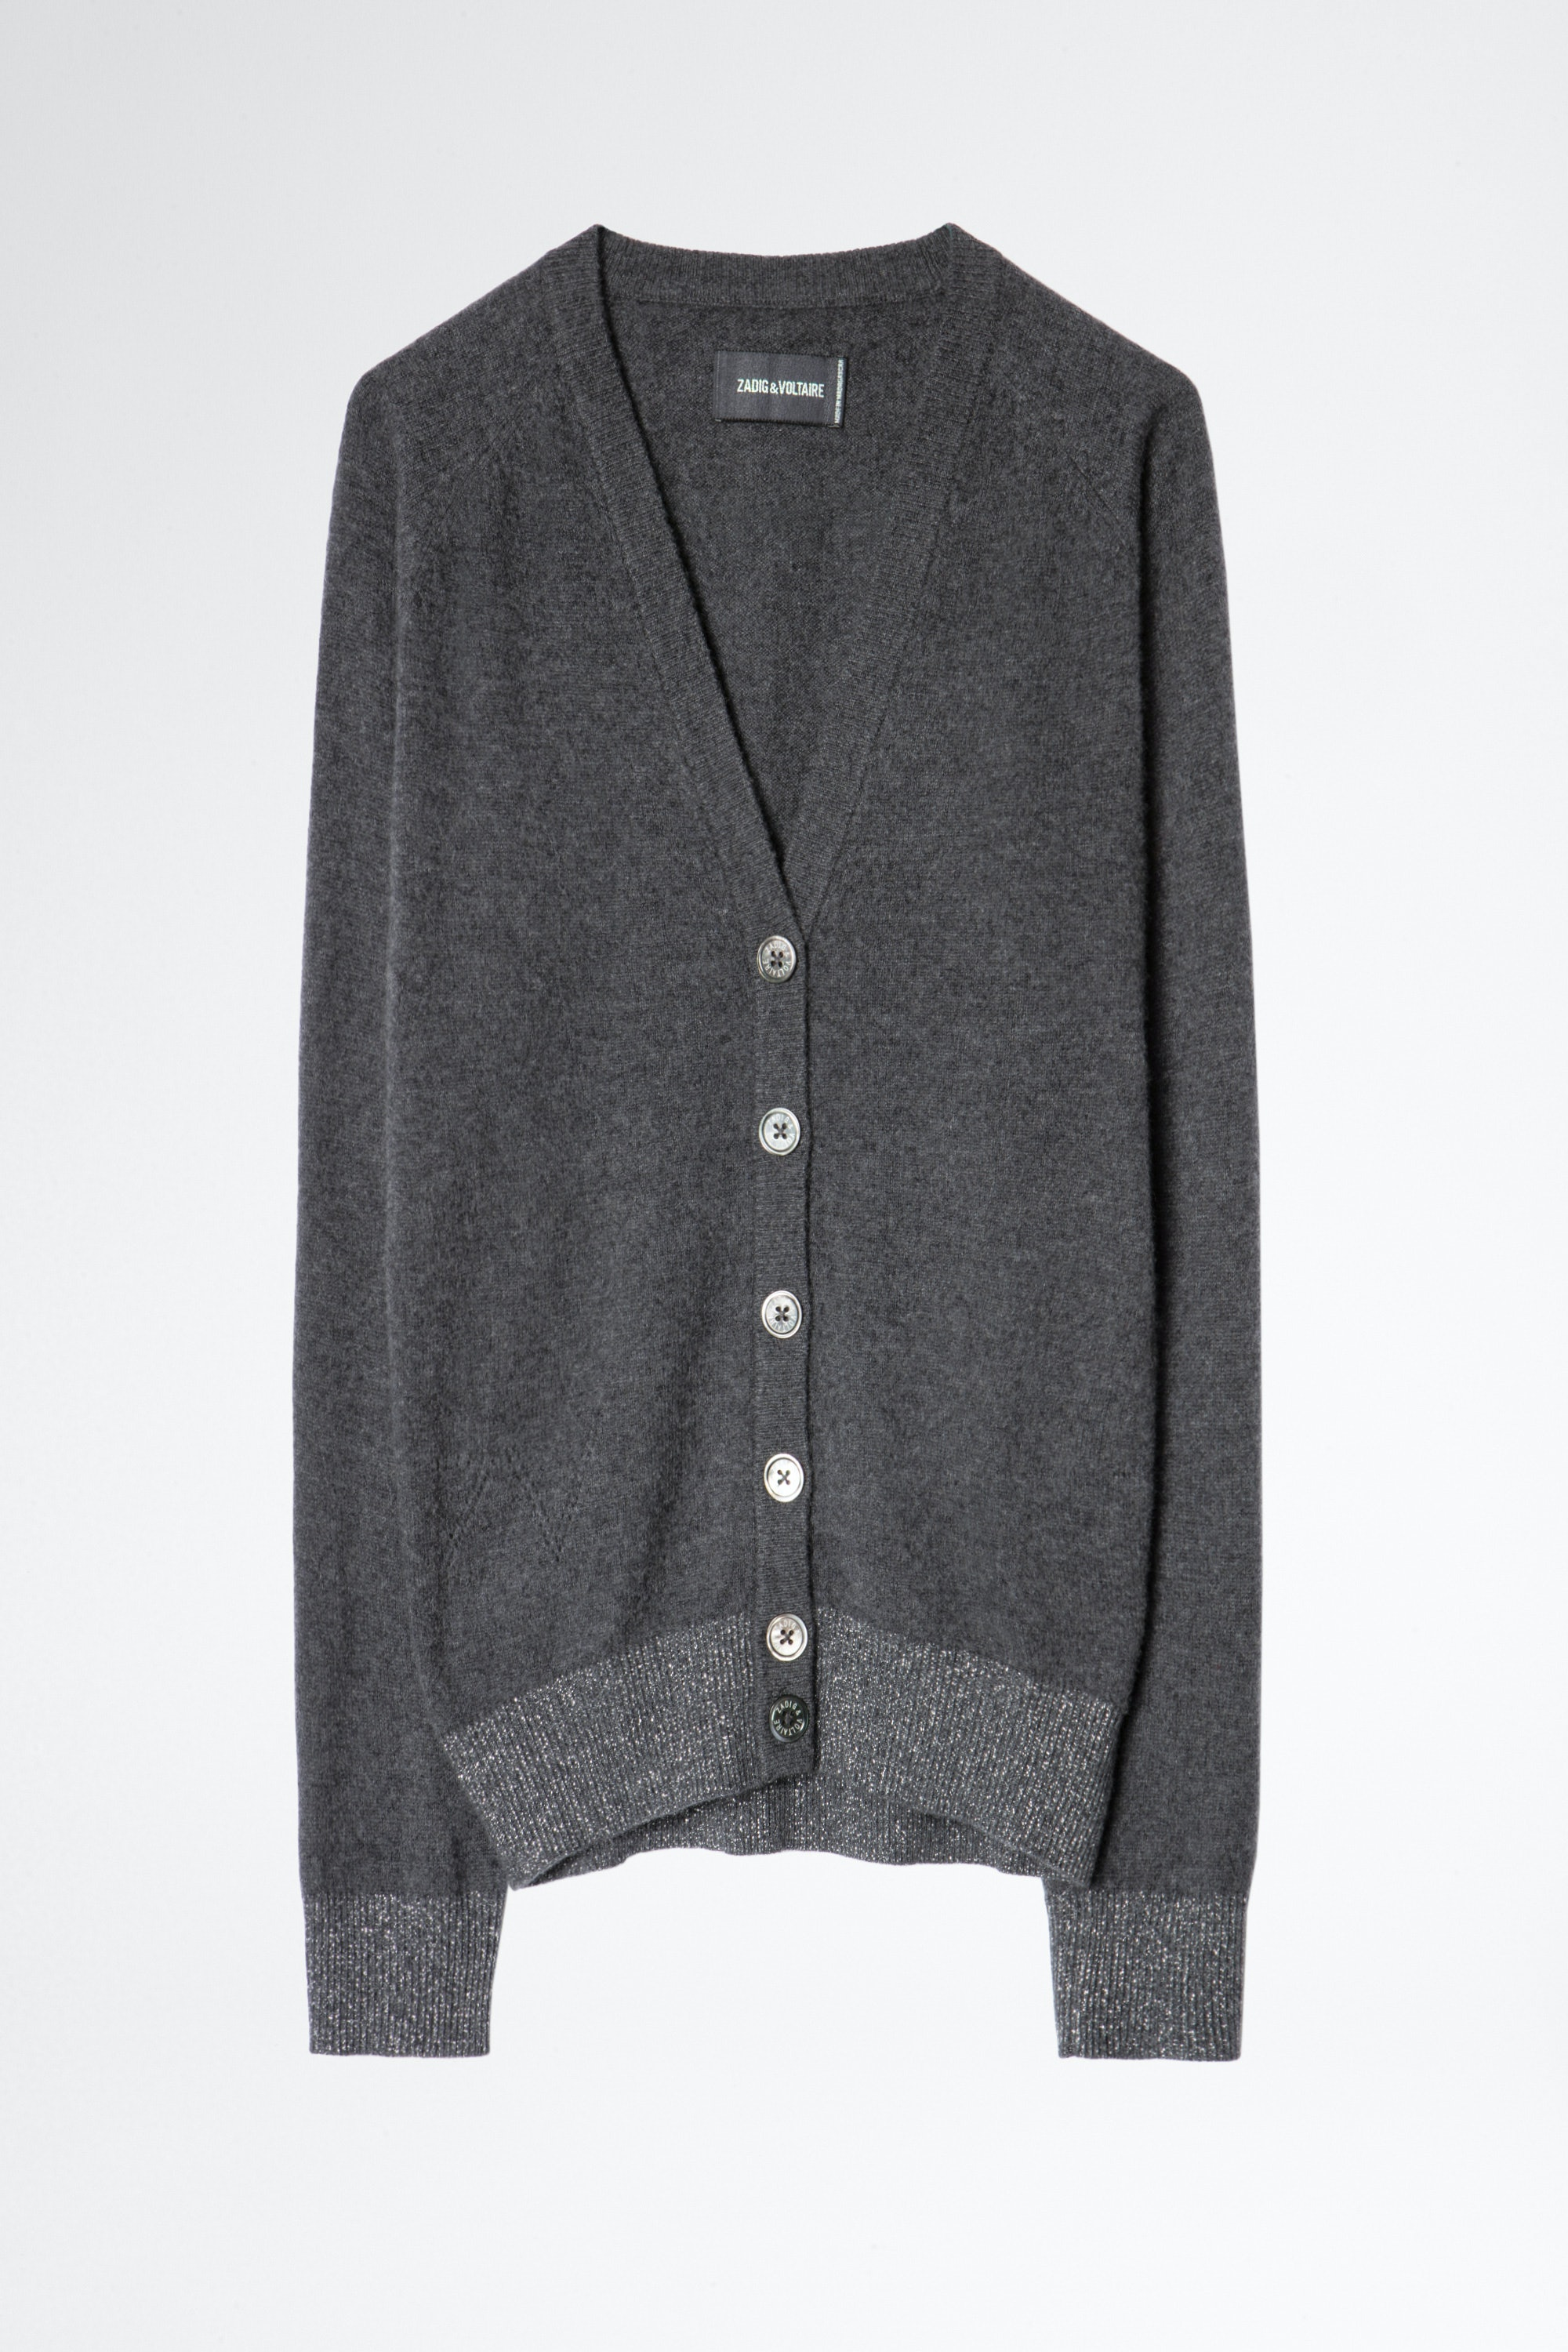 Jim Patch Lurex Cachemire Cardigan